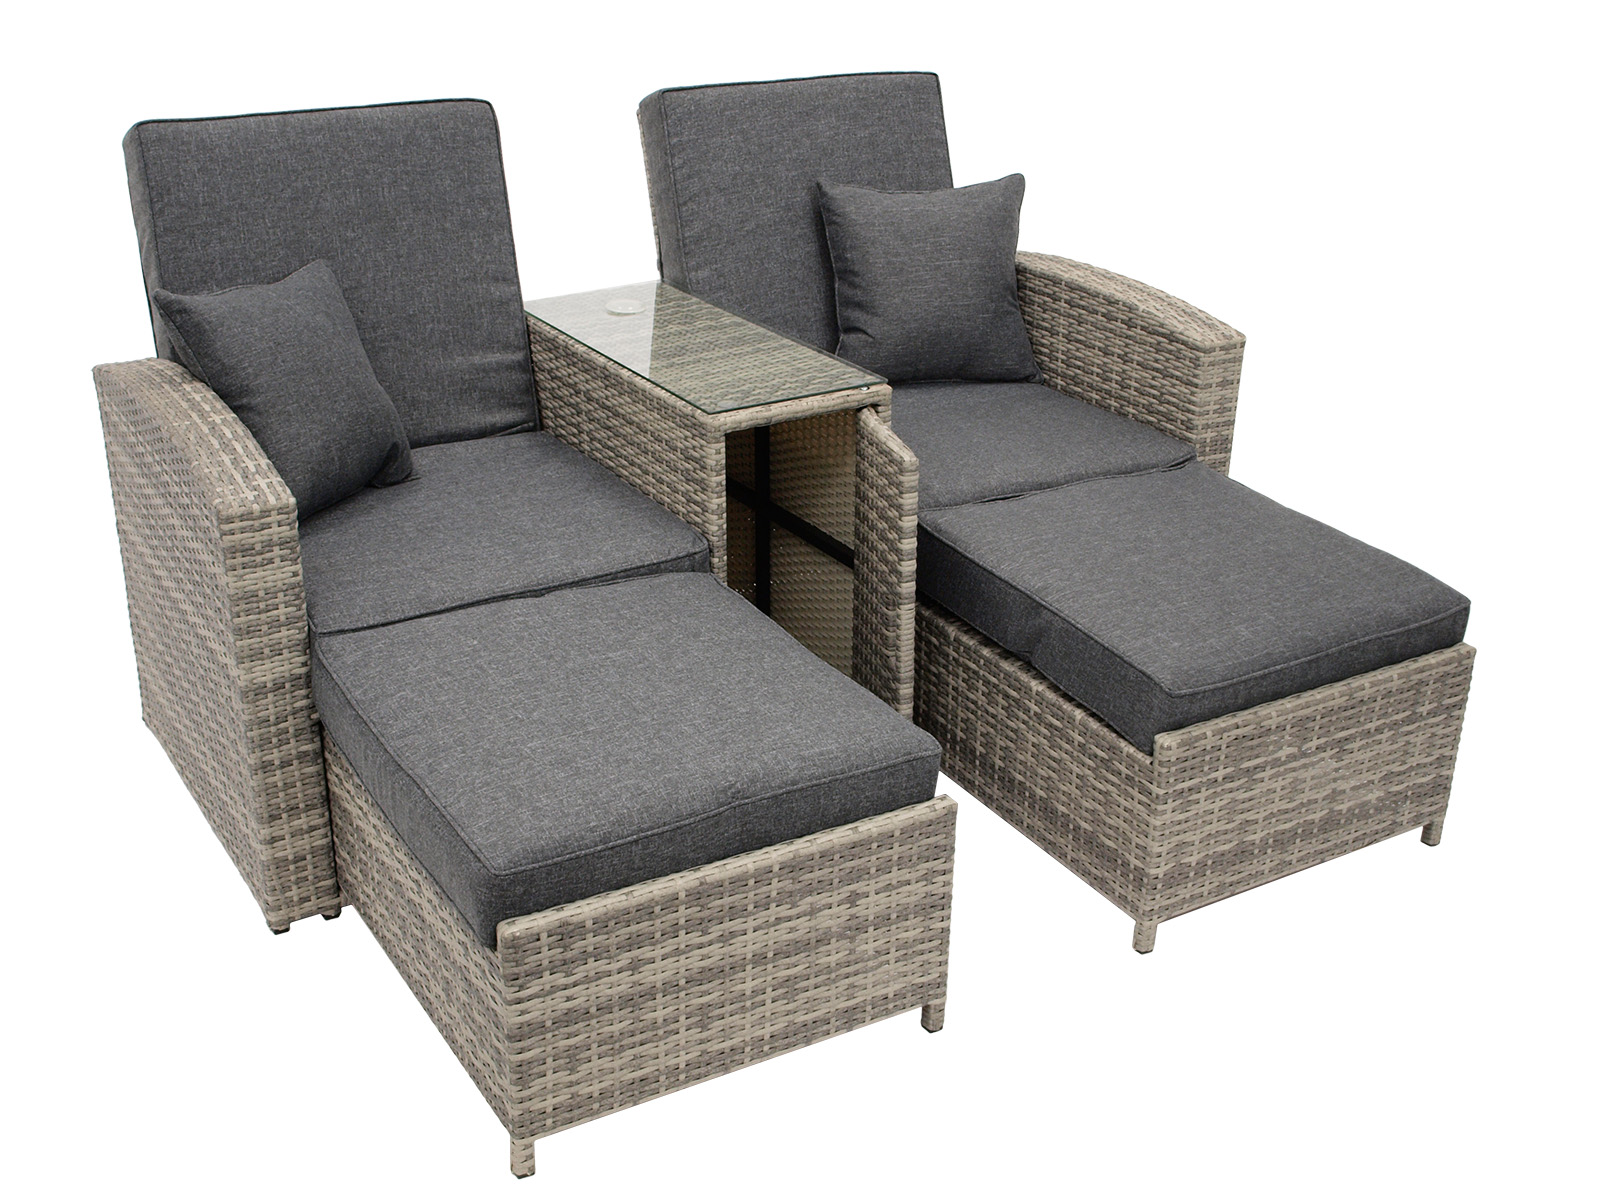 funktions doppelliege matera liegesofa sonnenliege gartenliege outdoor liege ebay. Black Bedroom Furniture Sets. Home Design Ideas